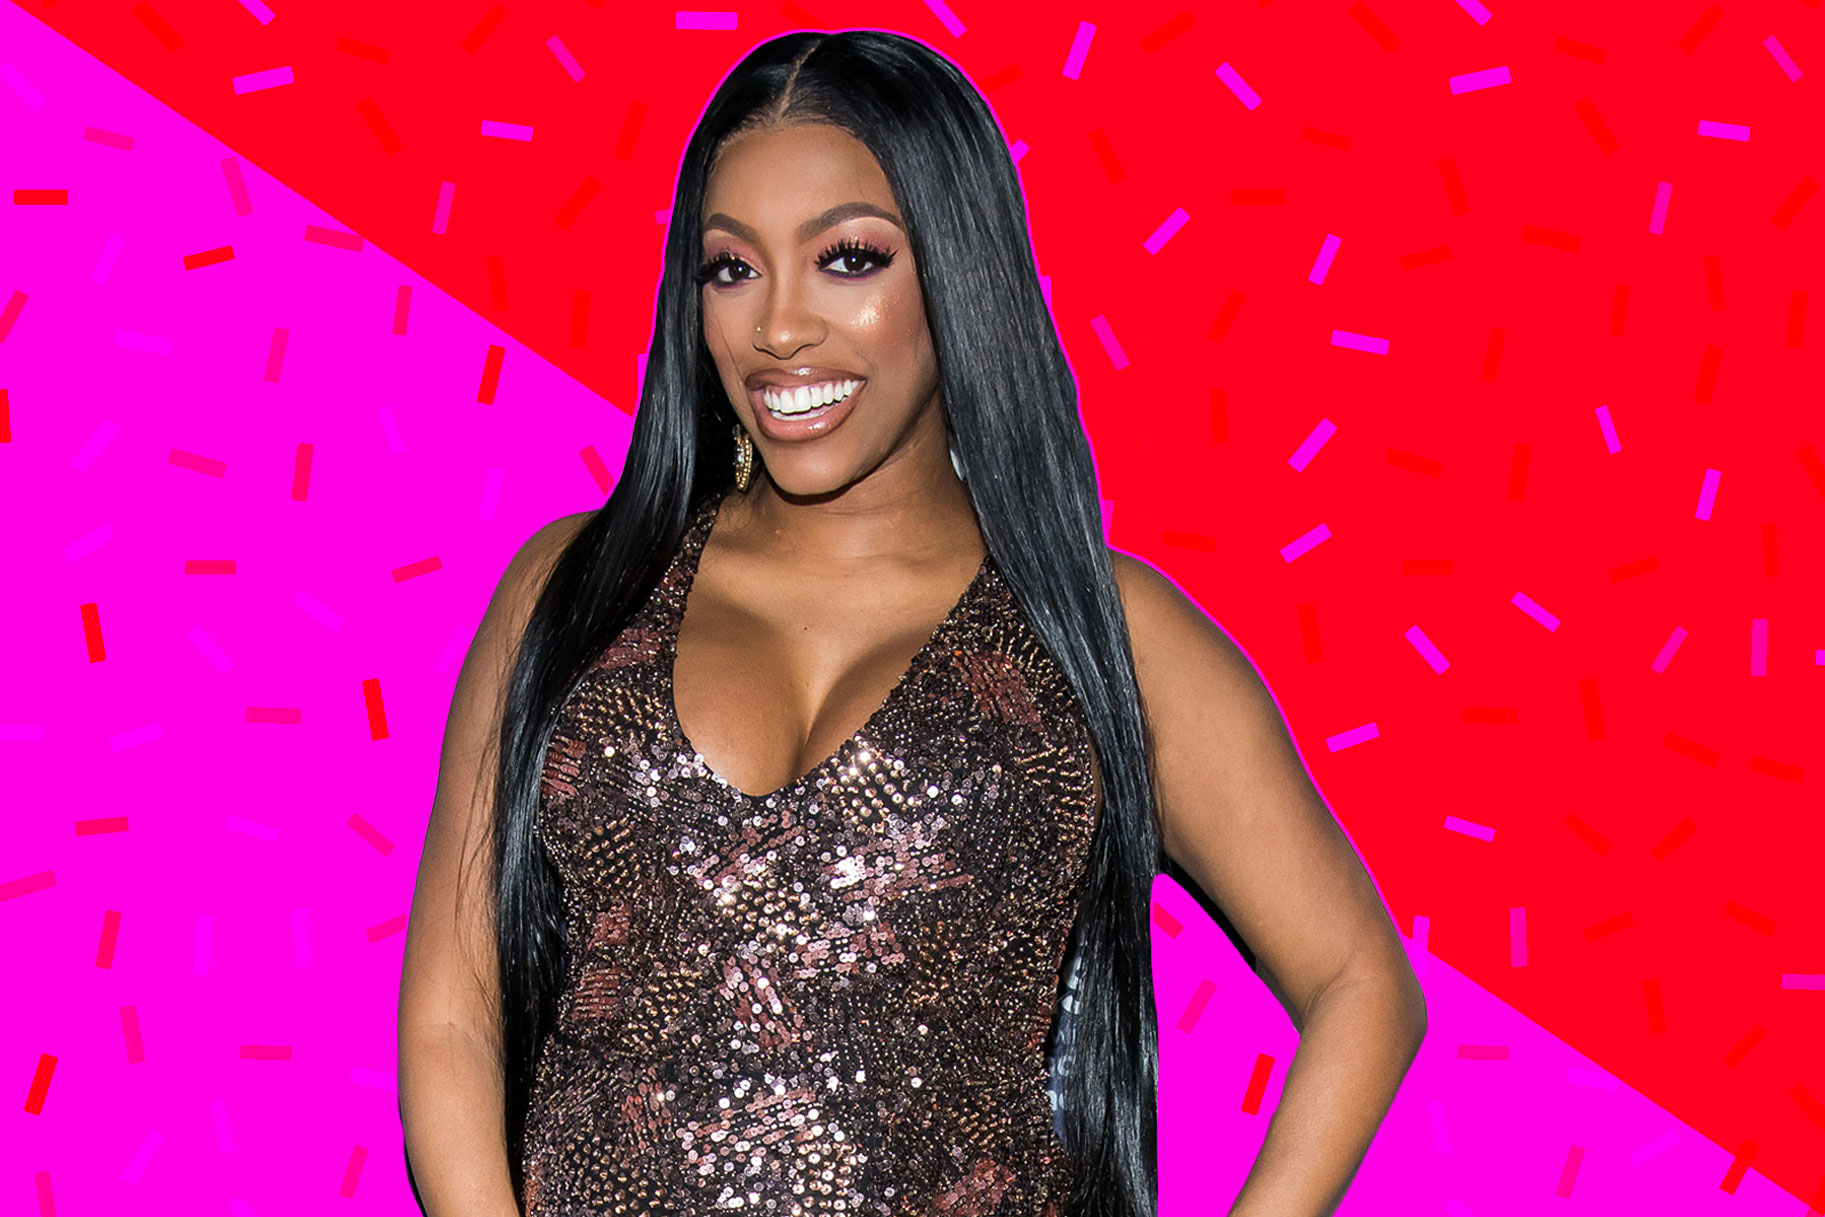 porsha-williams-lets-the-cat-out-of-the-bag-rhoa-wants-to-start-filming-early-over-drama-and-kenya-moores-return